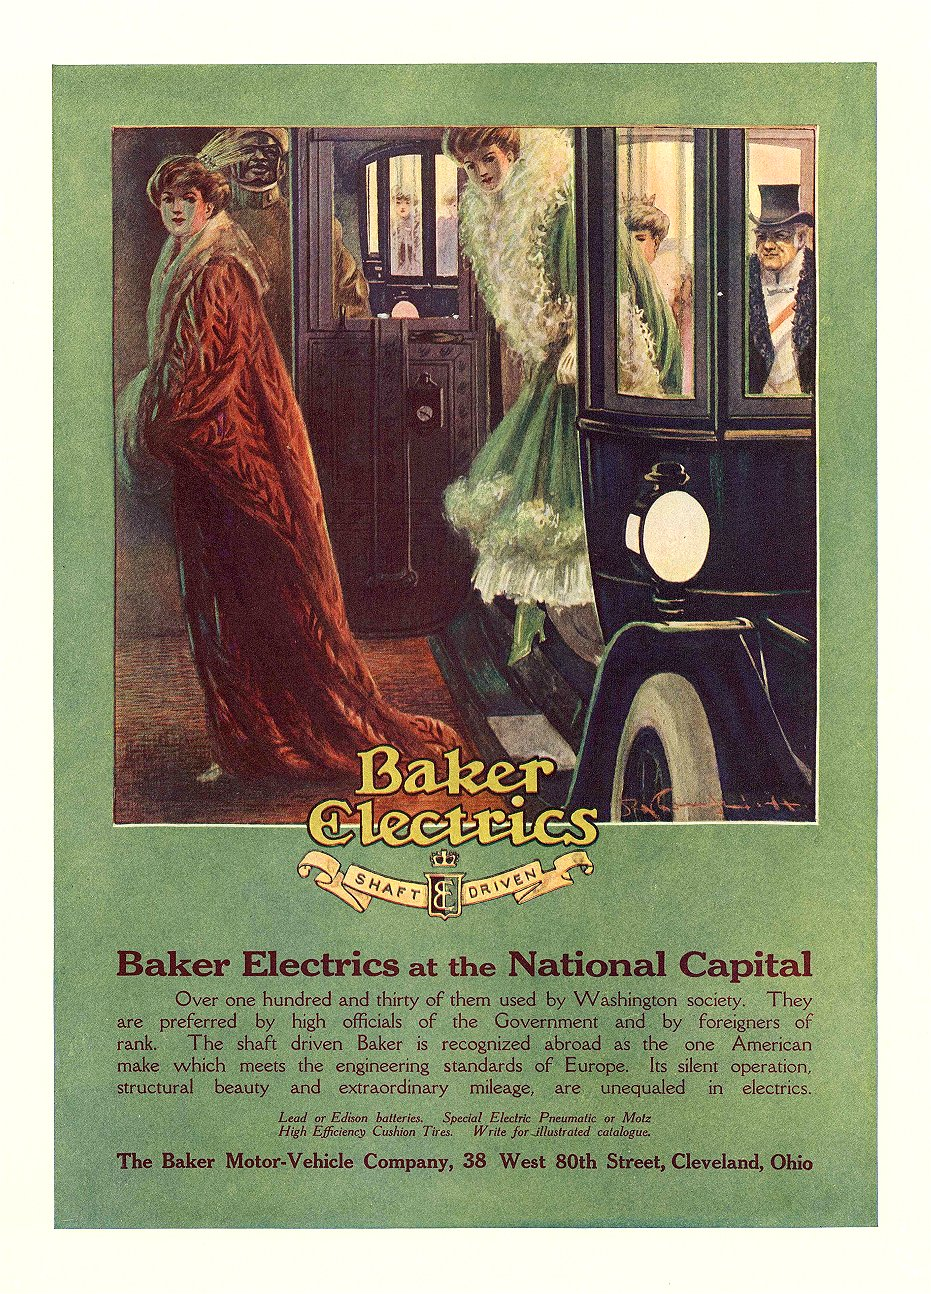 1911 1 15 BAKER Electric Baker Electrics at the National Capital The Baker Motor-Vehicle Company Cleveland, OHIO COUNTRY LIFE IN AMERICA March 15, 1911 10″x14.25″ Inside front cover